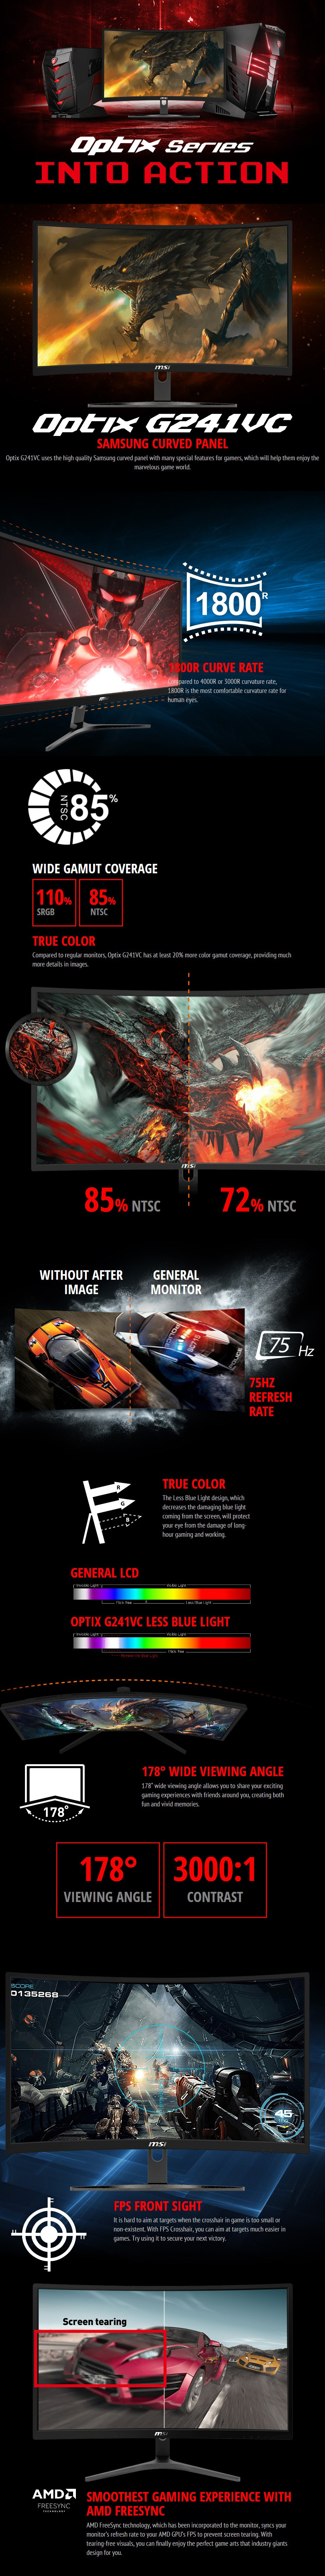 """MSI OPTIX G241VC 23.6"""" 75Hz Full HD 1ms Curved FreeSync Gaming Monitor - Overview 1"""